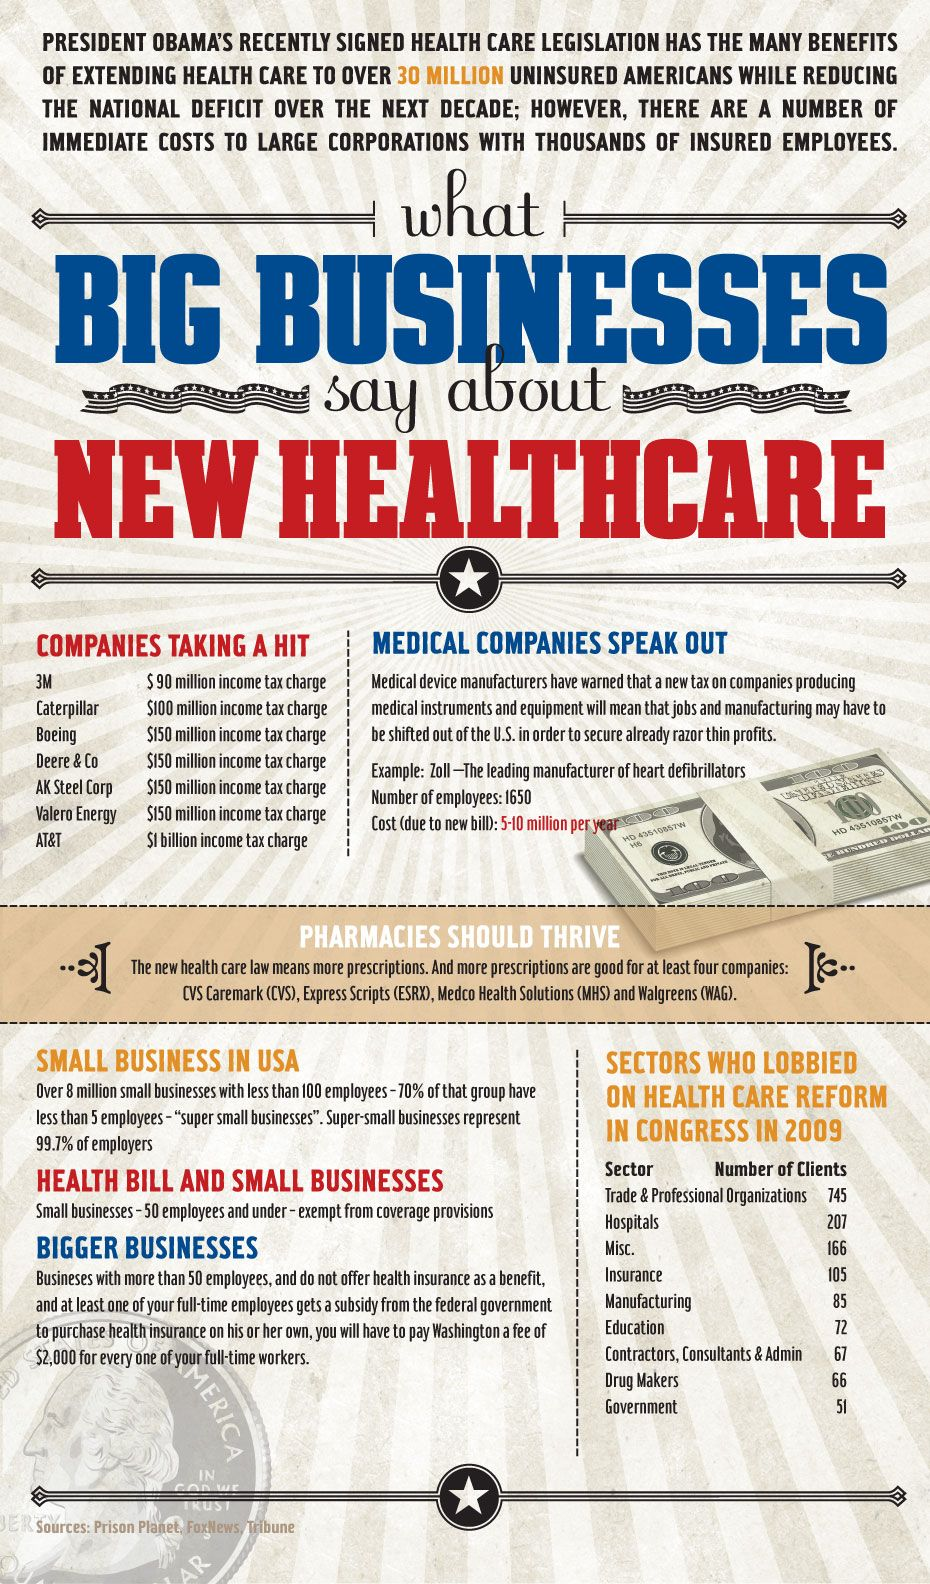 The Big Business Side Of Healthcare Reform New Visions